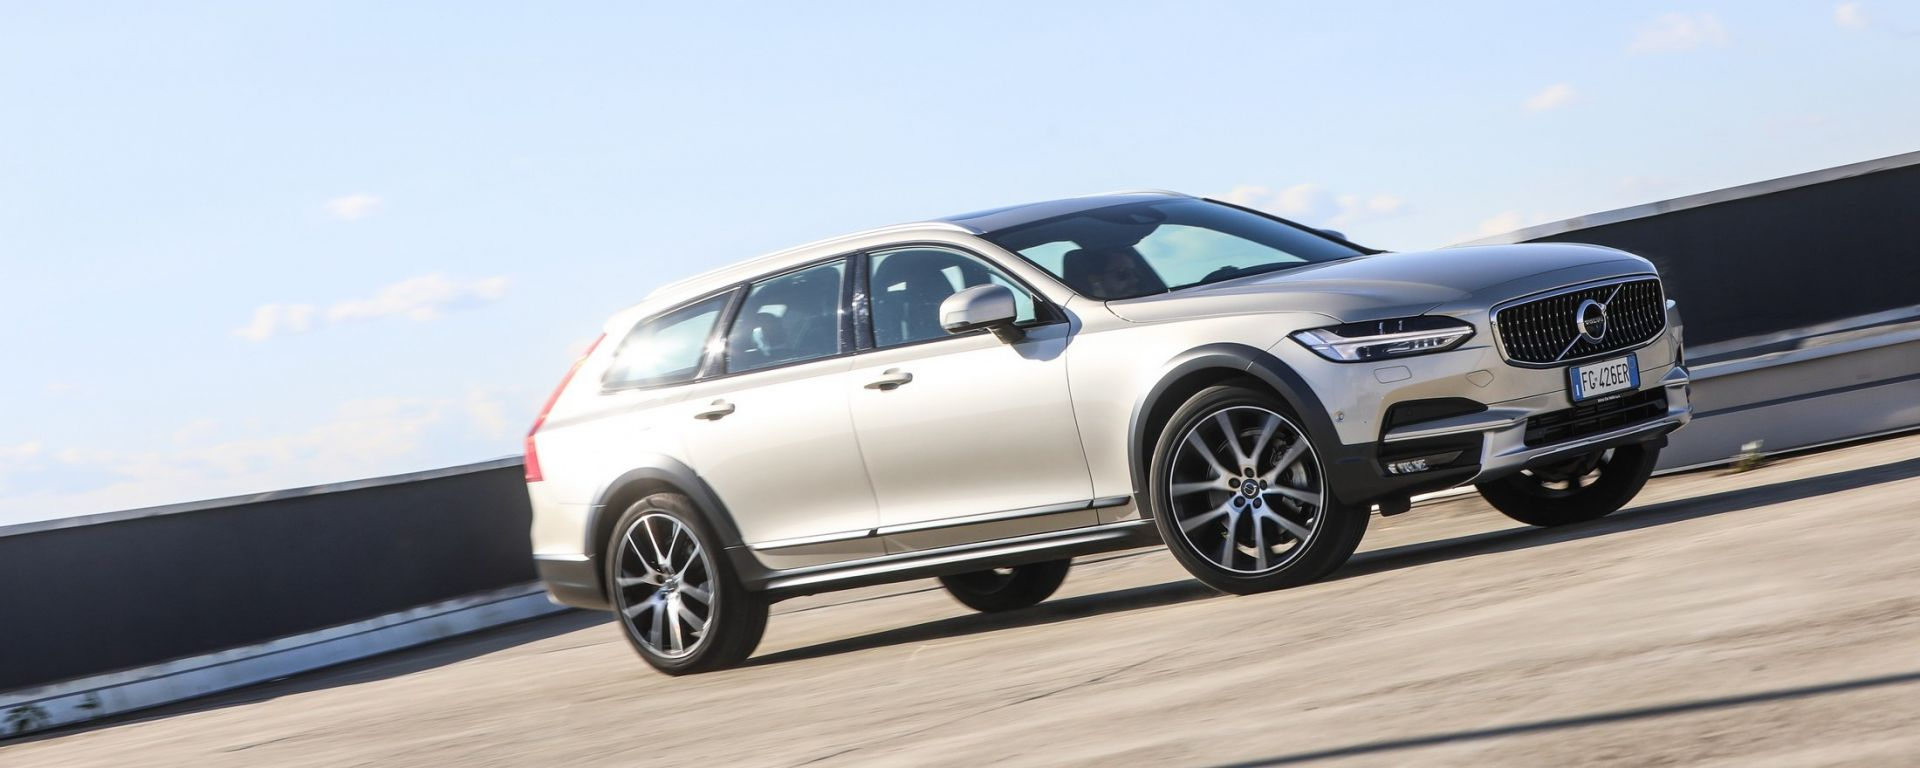 Volvo V90 Cross Country: la prova su strada